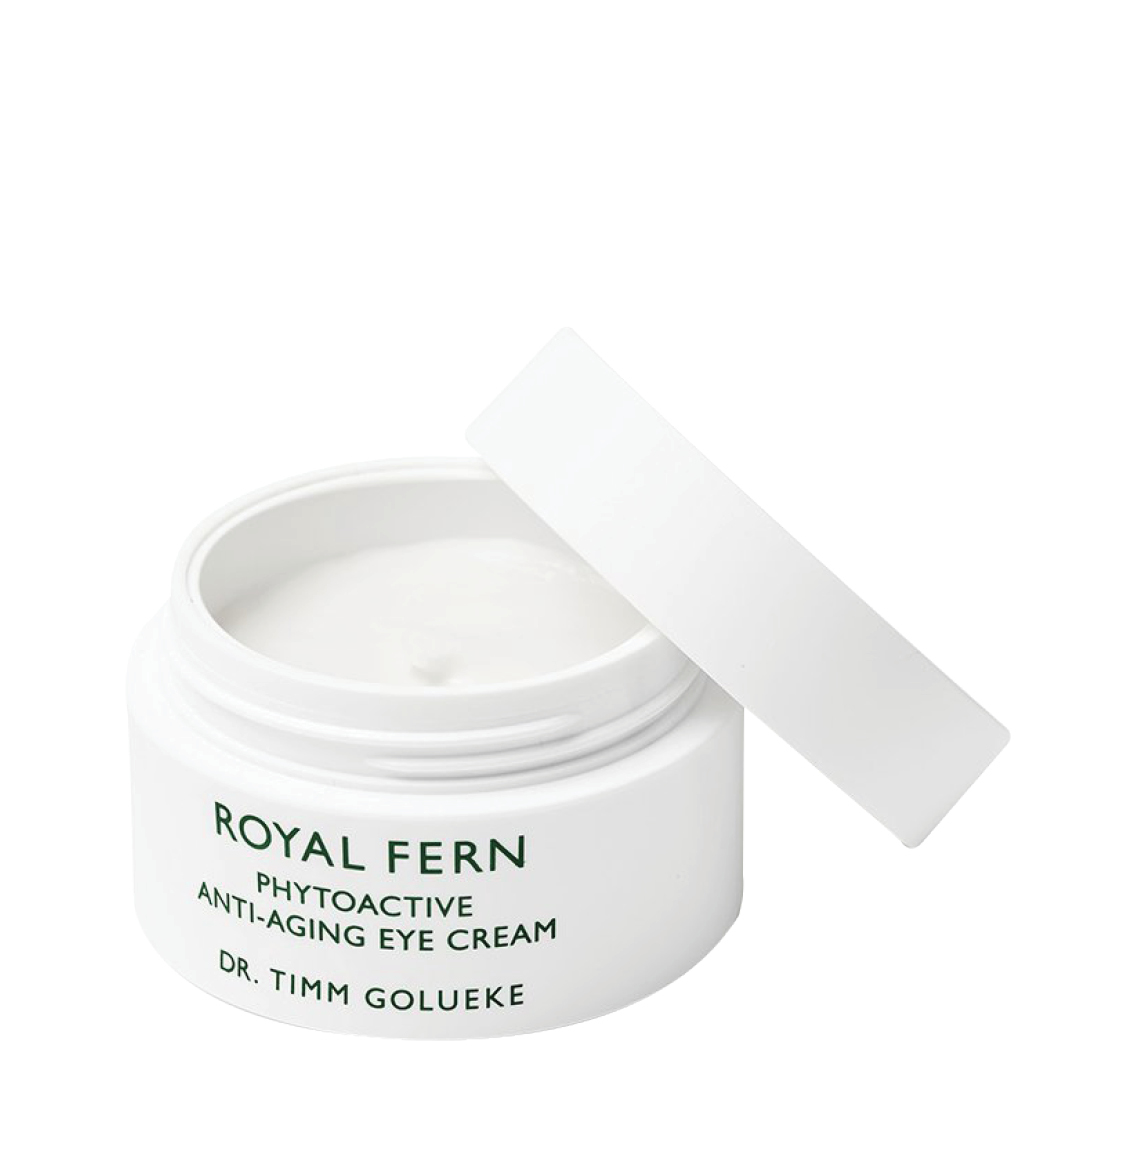 Royal Fern Phytoactive Anti-Ageing Eye Cream 15ml